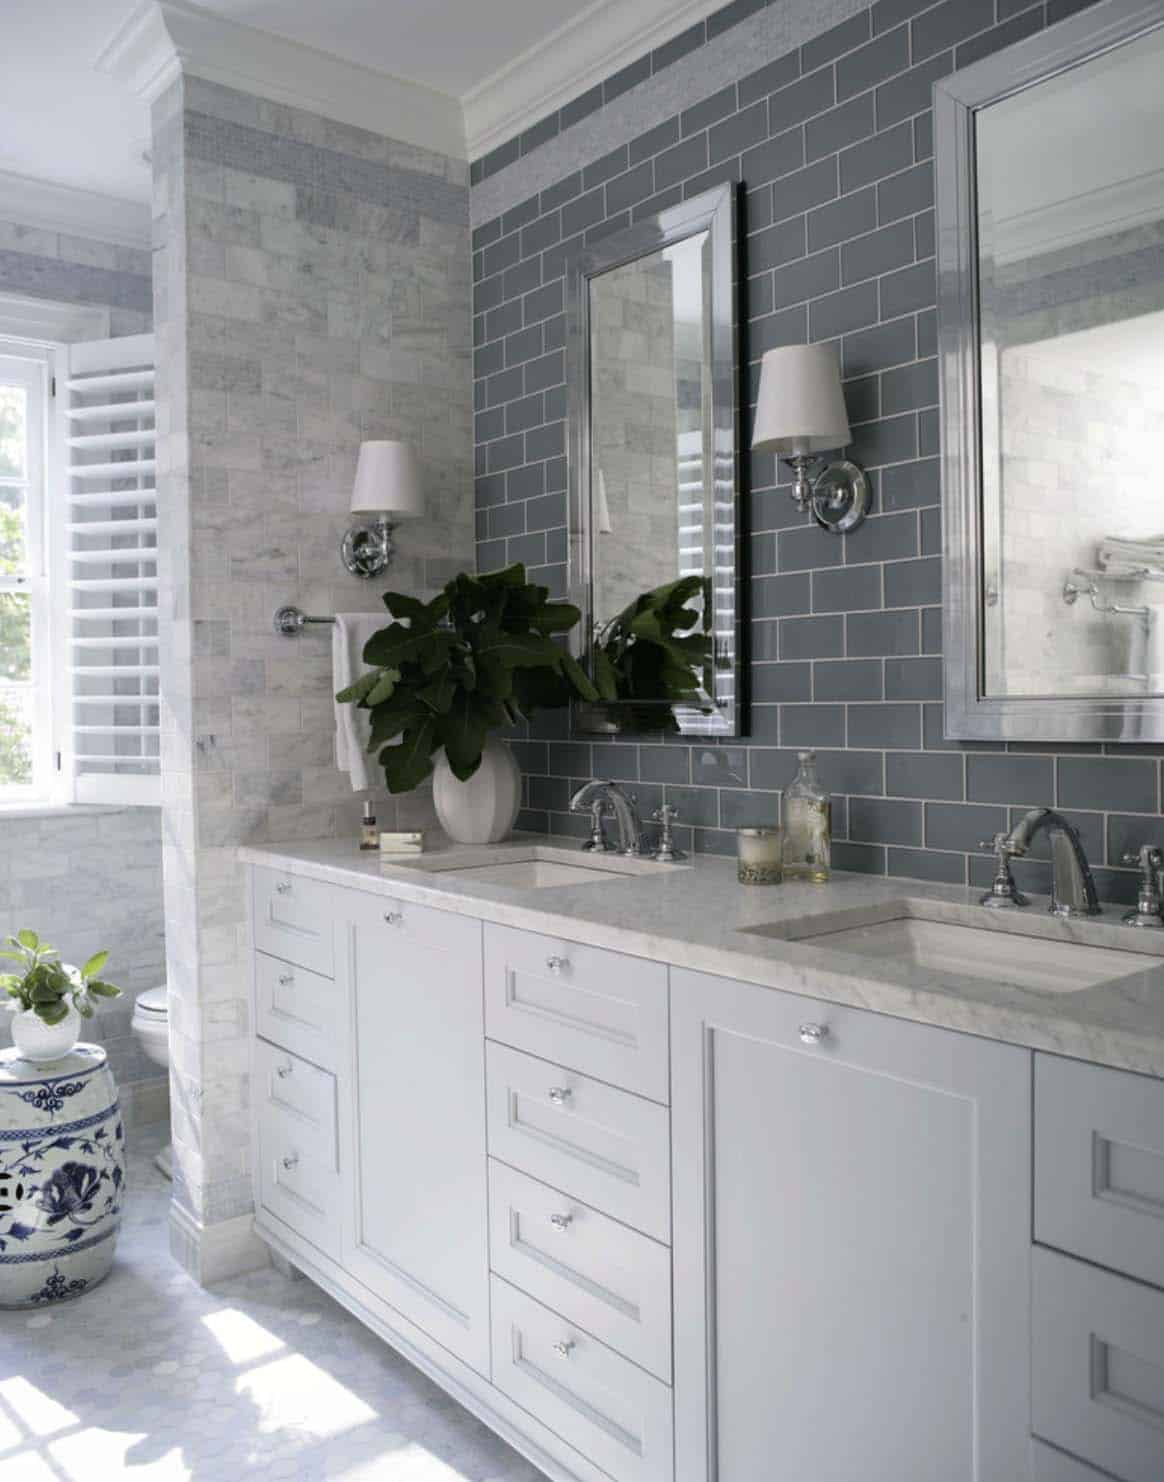 53 most fabulous traditional style bathroom designs ever - Pictures of bathroom designs ...